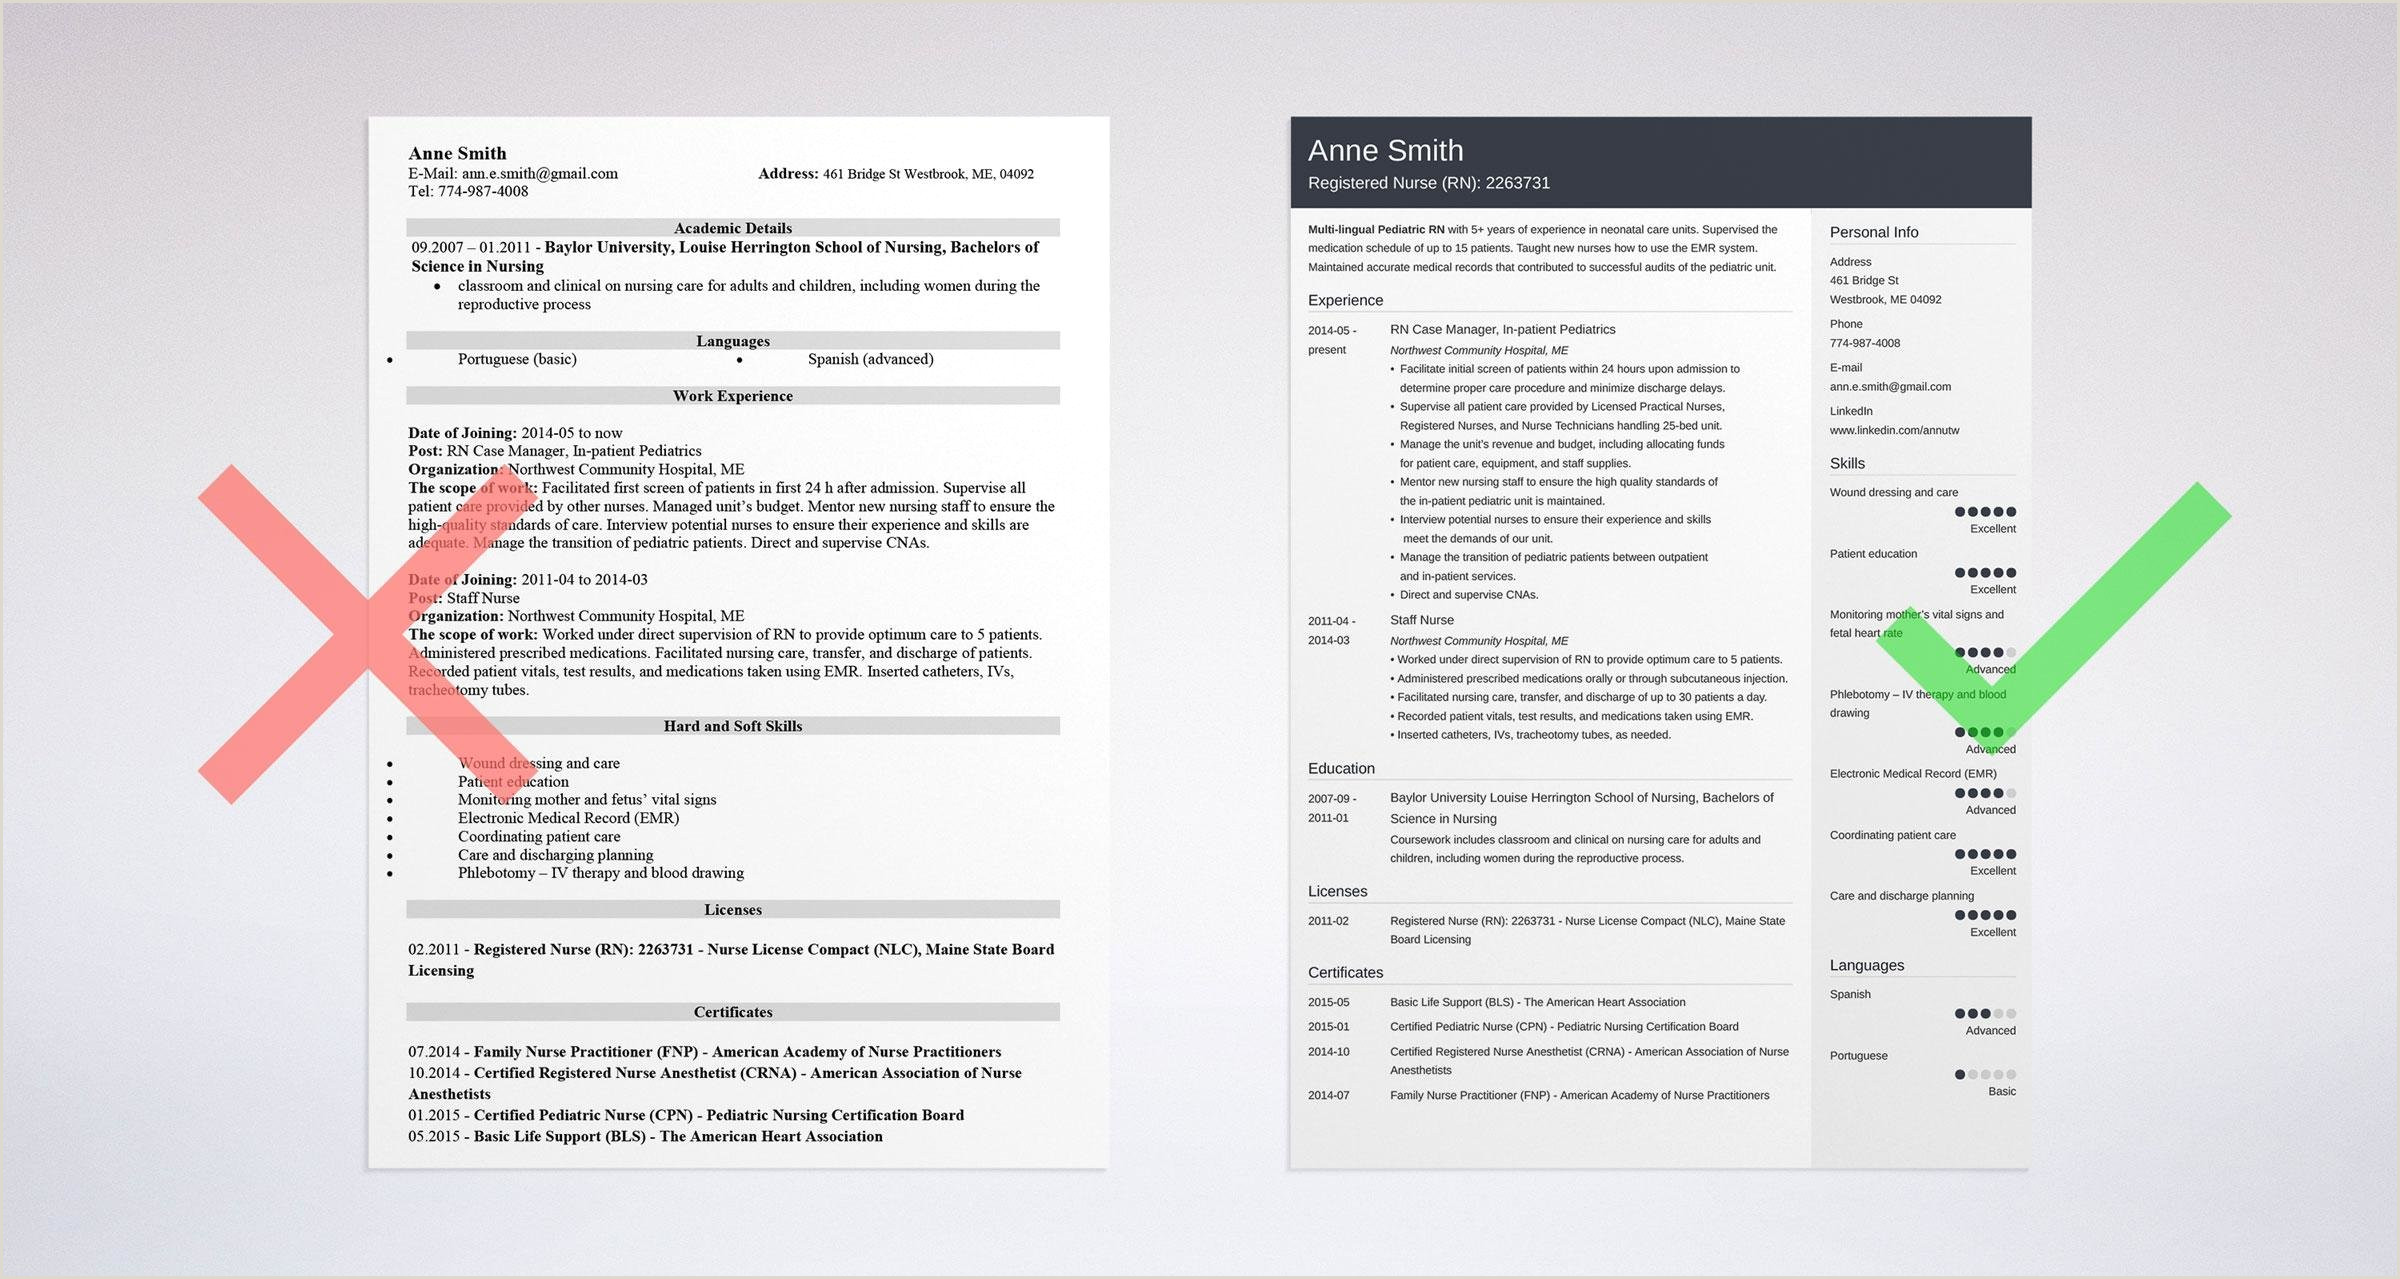 Professional Cv format for Nurses Nursing Resume Template & Guide [examples Of Experience